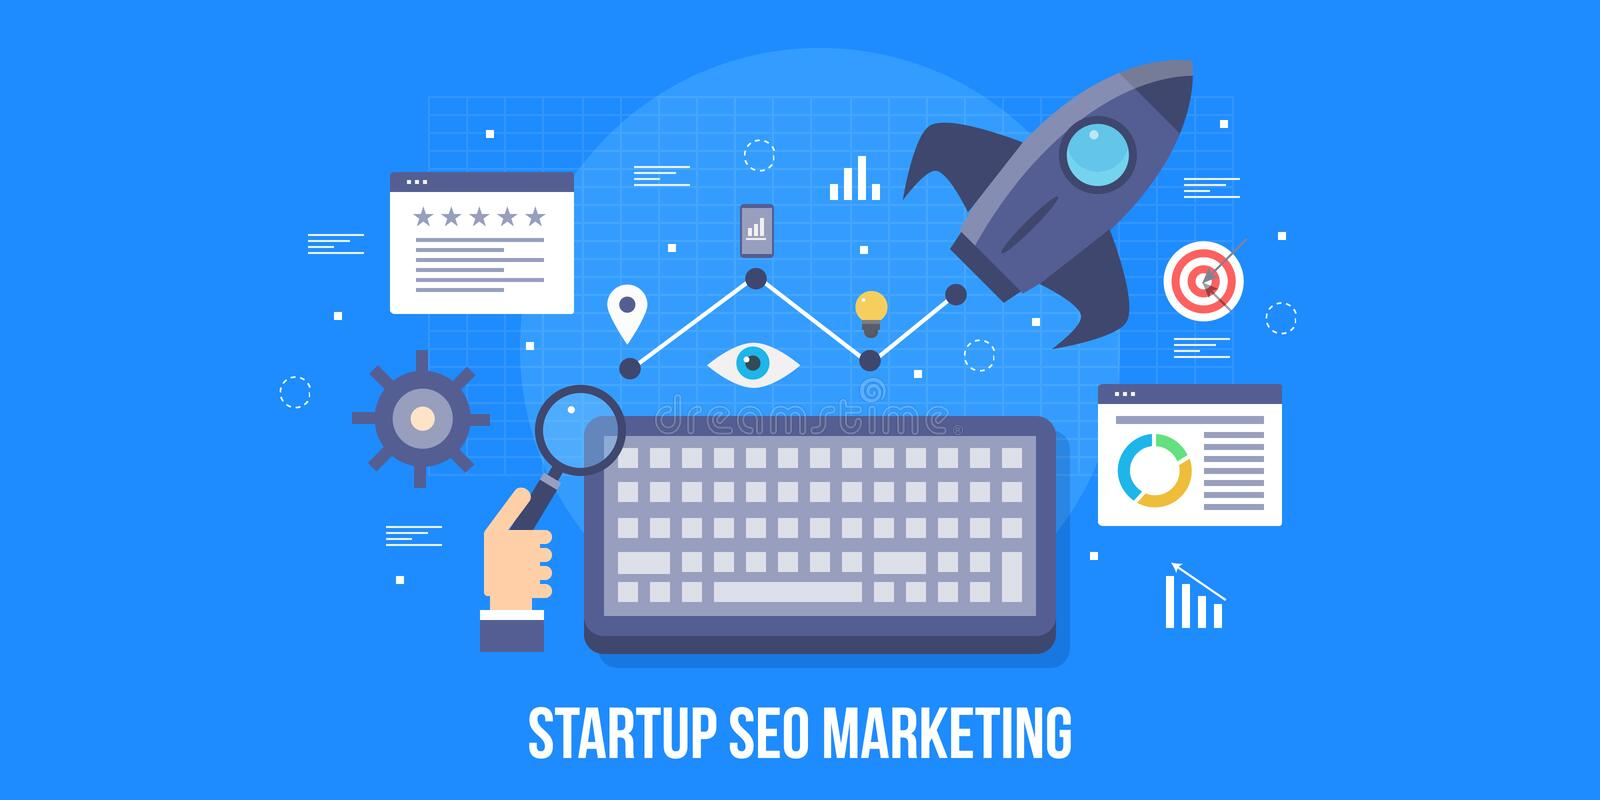 Startup business, search engine optimization, startup seo, growth hacking, boost startup concept. Flat design vector banner. vector illustration